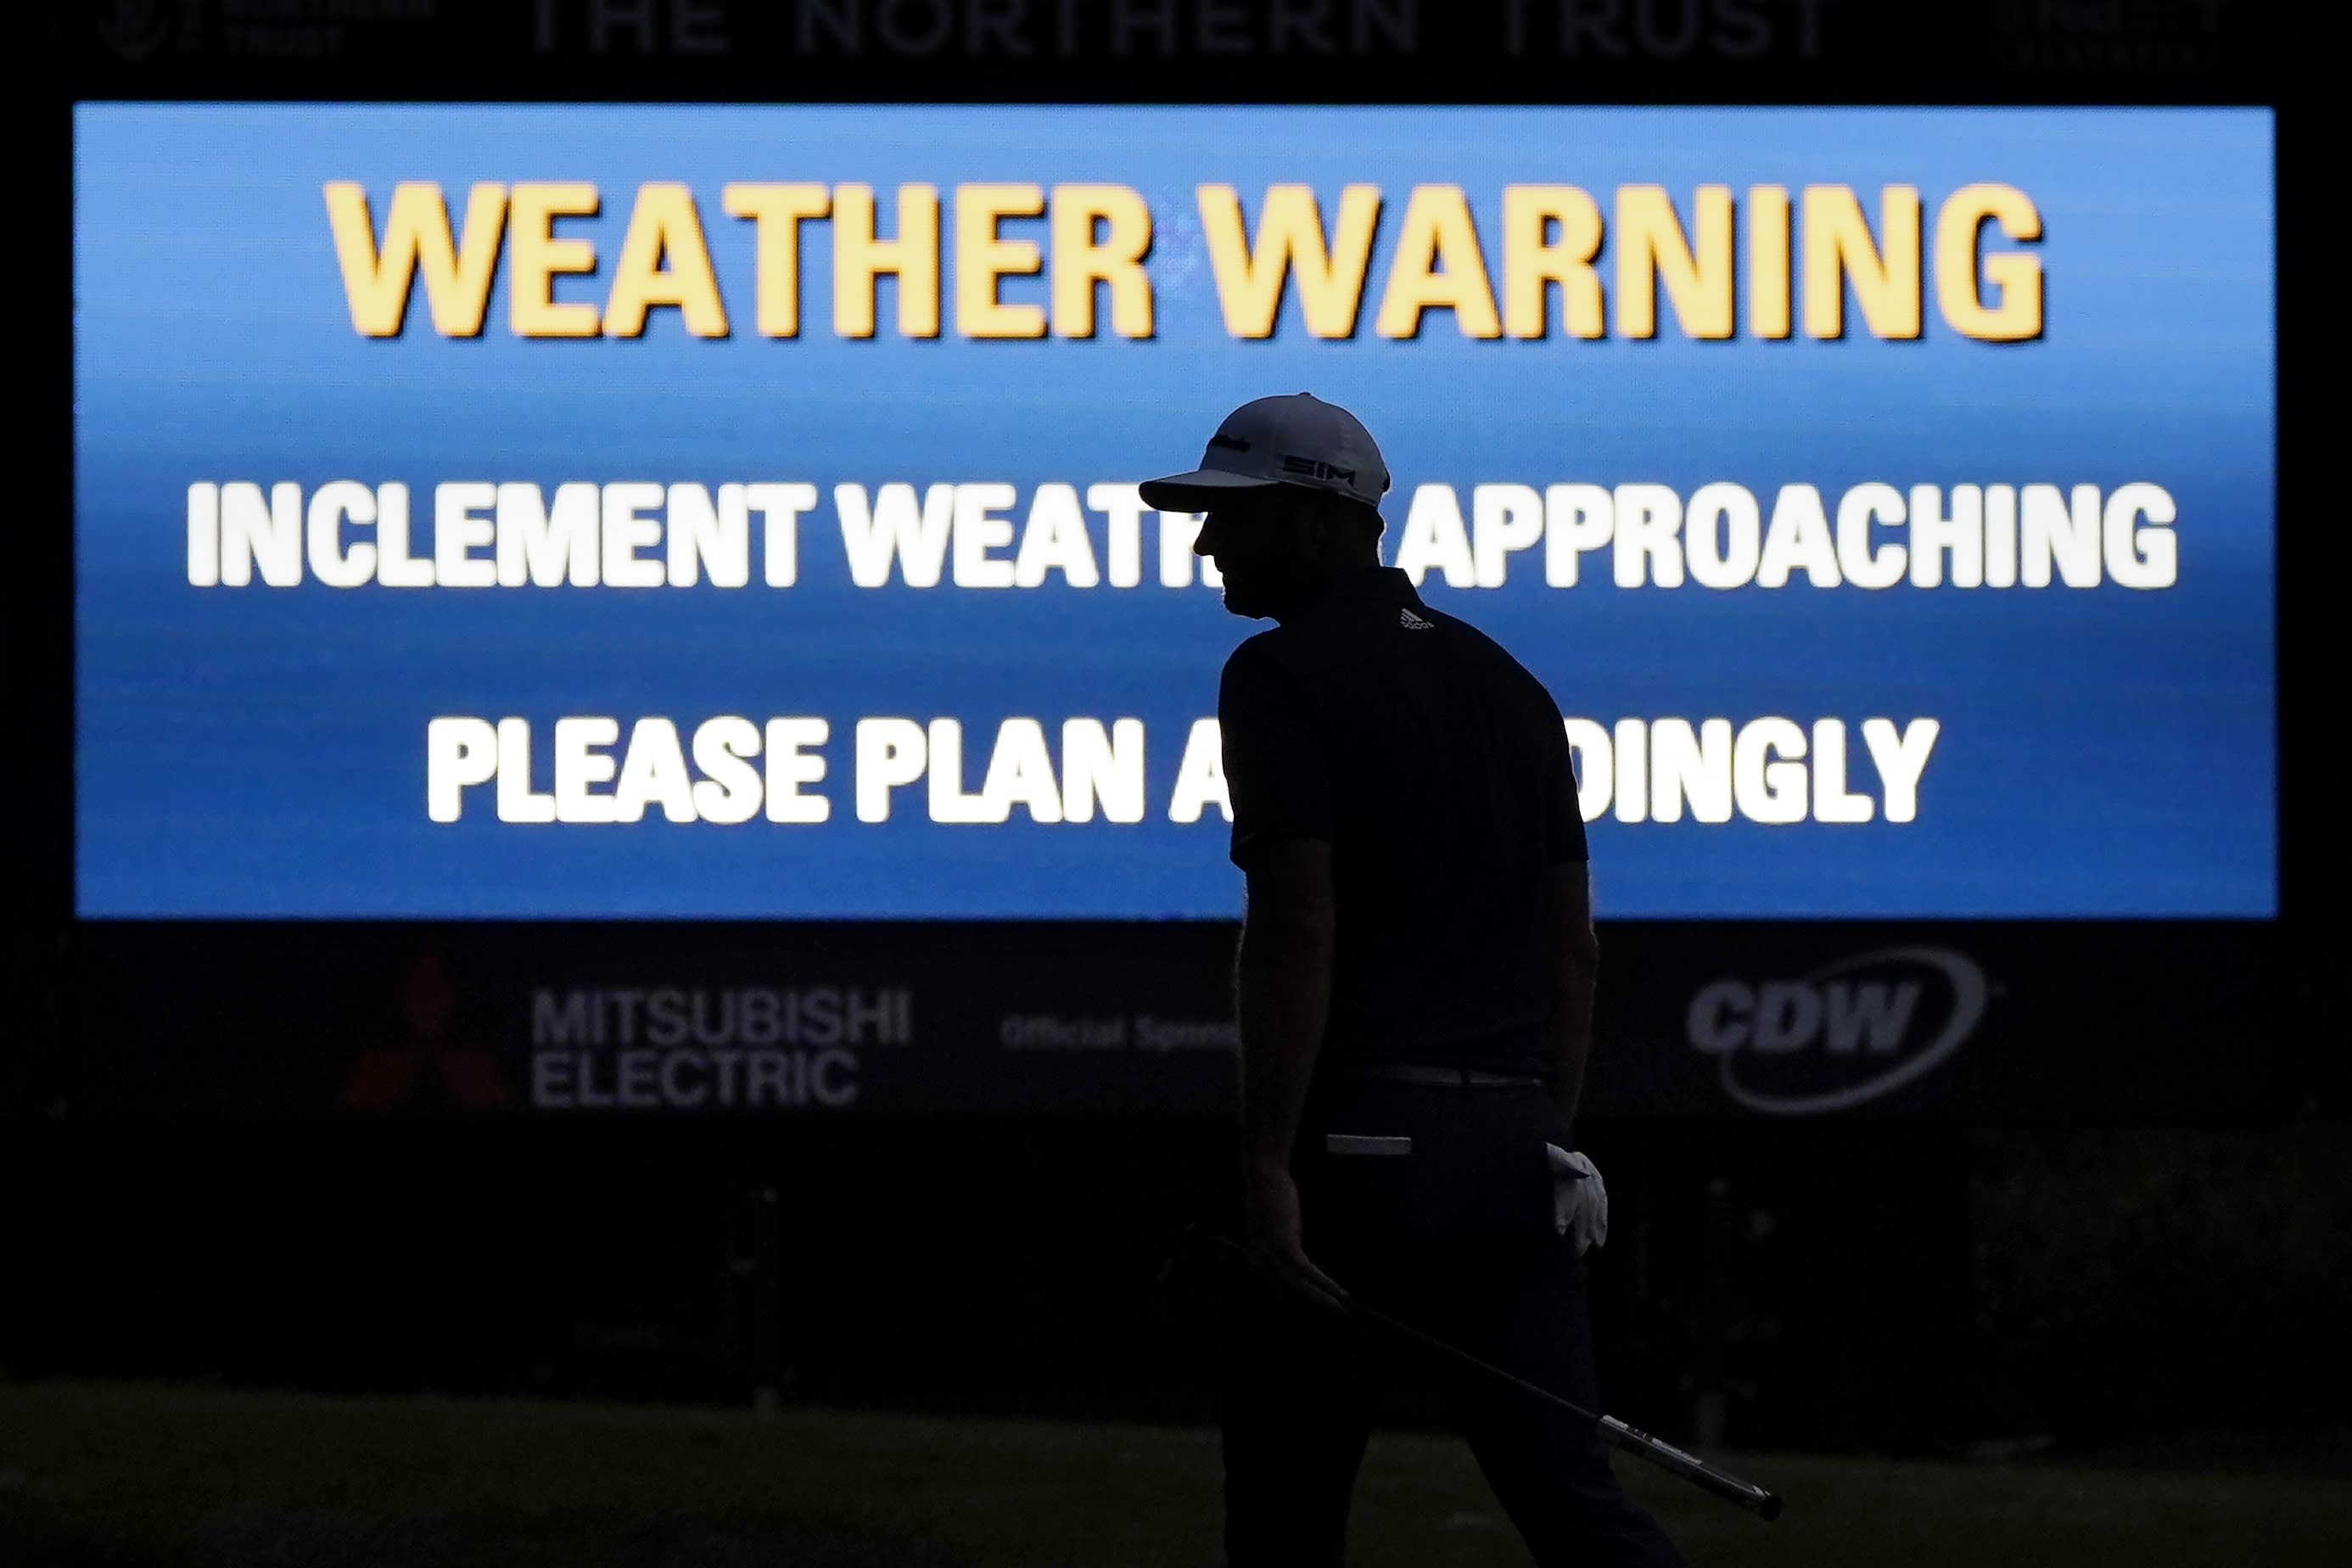 Dustin Johnson is silhouetted in the glow of a weather warning sign on the 17th hole during the final round of the Northern Trust golf tournament at TPC Boston, Sunday, Aug. 23, 2020, in Norton, Mass. (AP Photo/Charles Krupa)